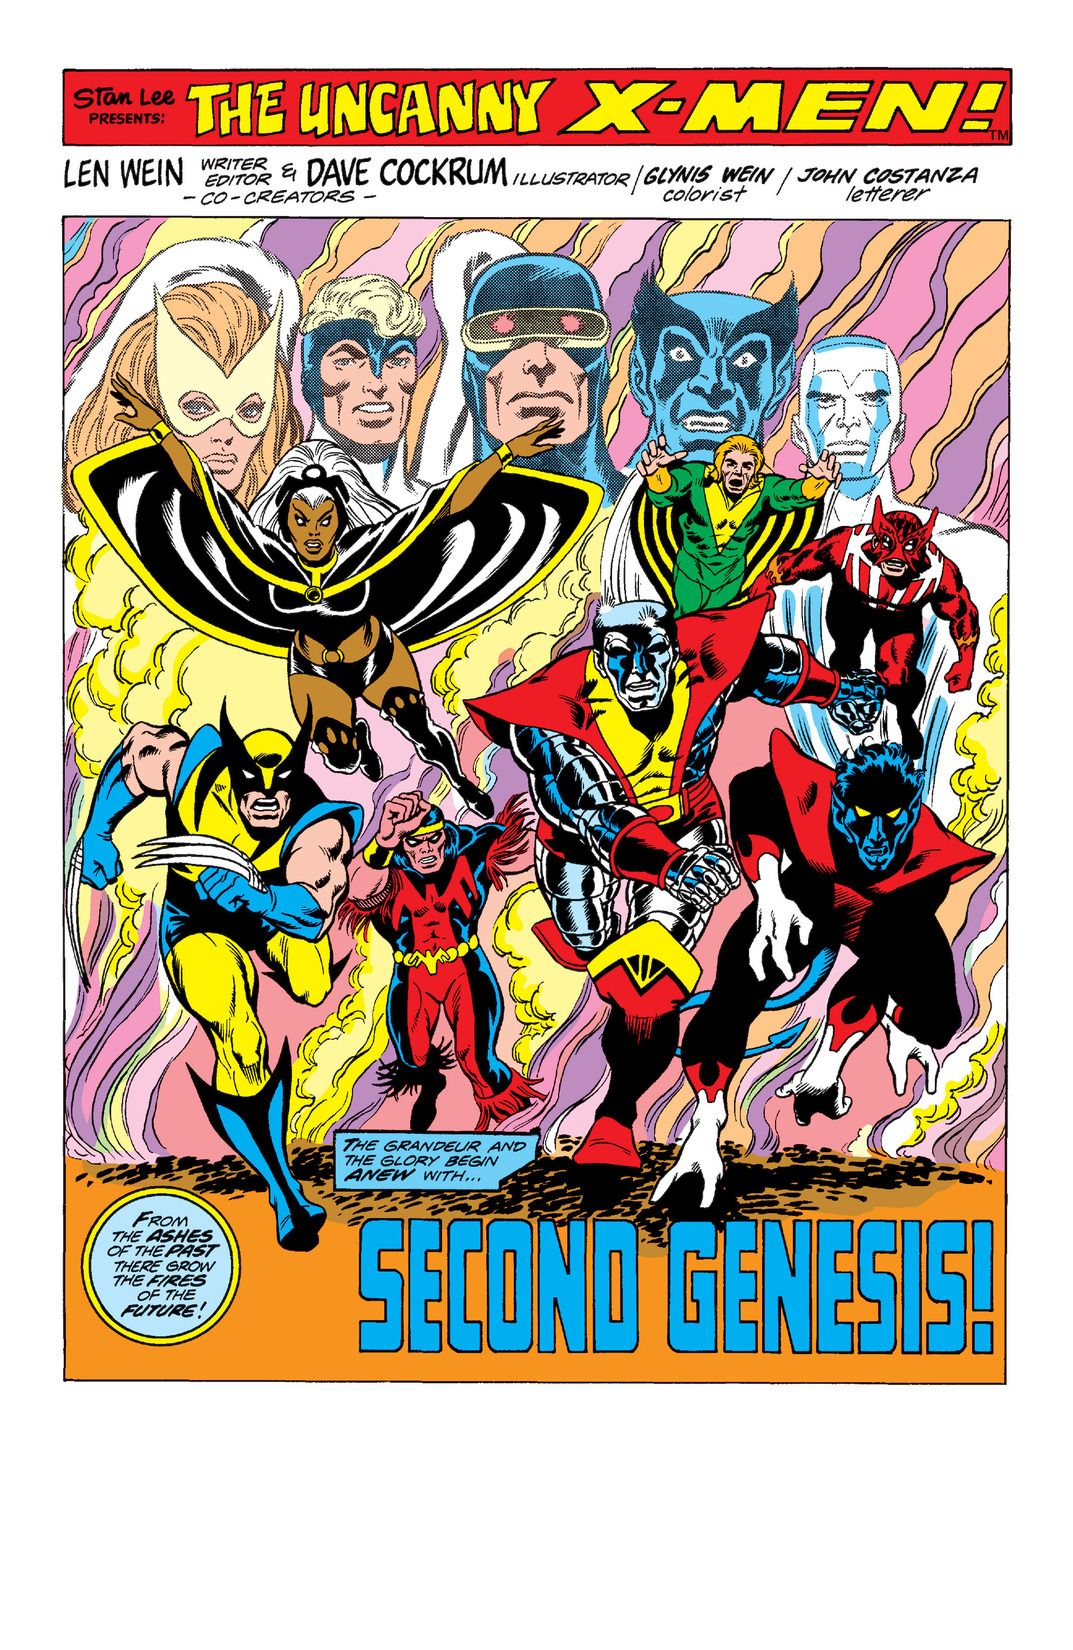 X-Men Epic Collection: Second Genesis TPB Review